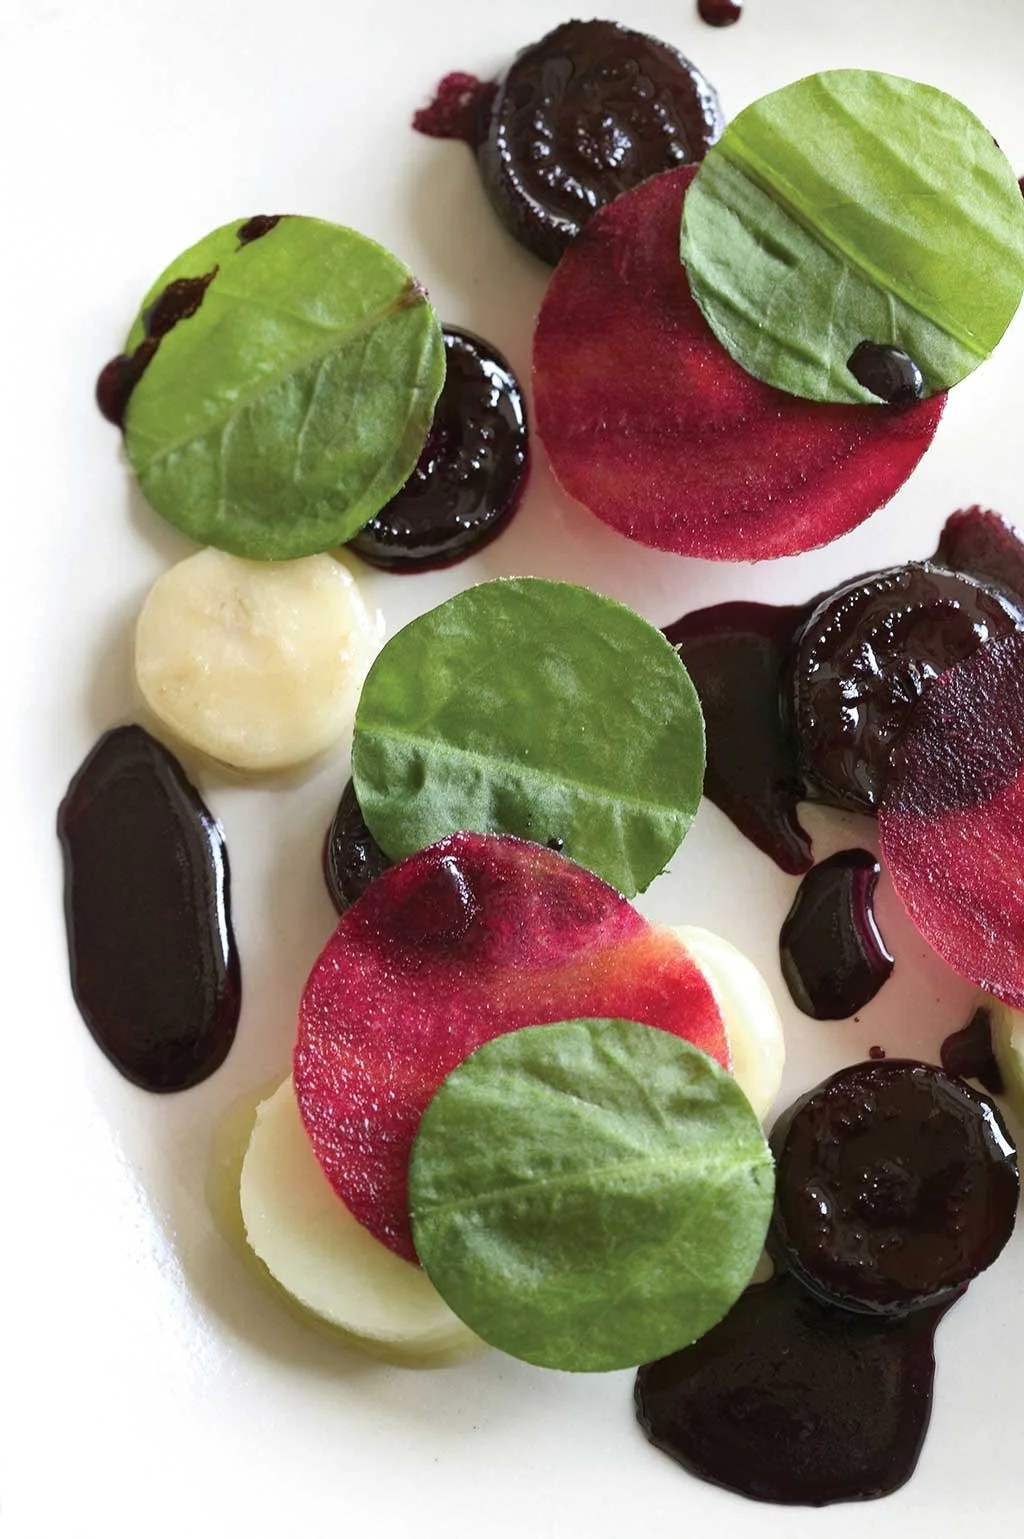 Glazed beets and apples at Restaurant noma, Copenhagen